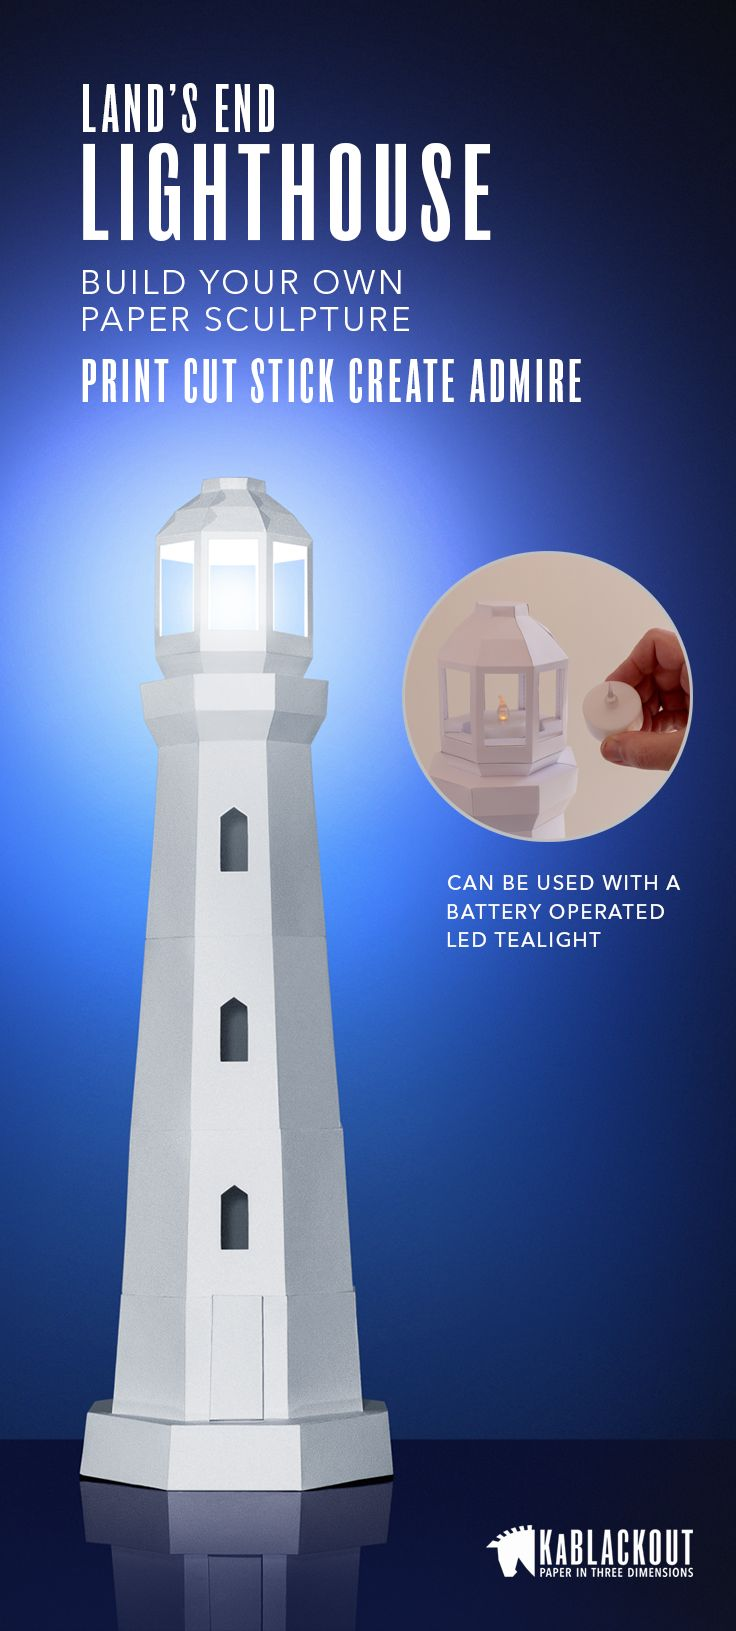 68 best papercraft templates images on pinterest paper crafts lighthouse low poly paper model template and assembly guide print pattern on your own choice pronofoot35fo Choice Image